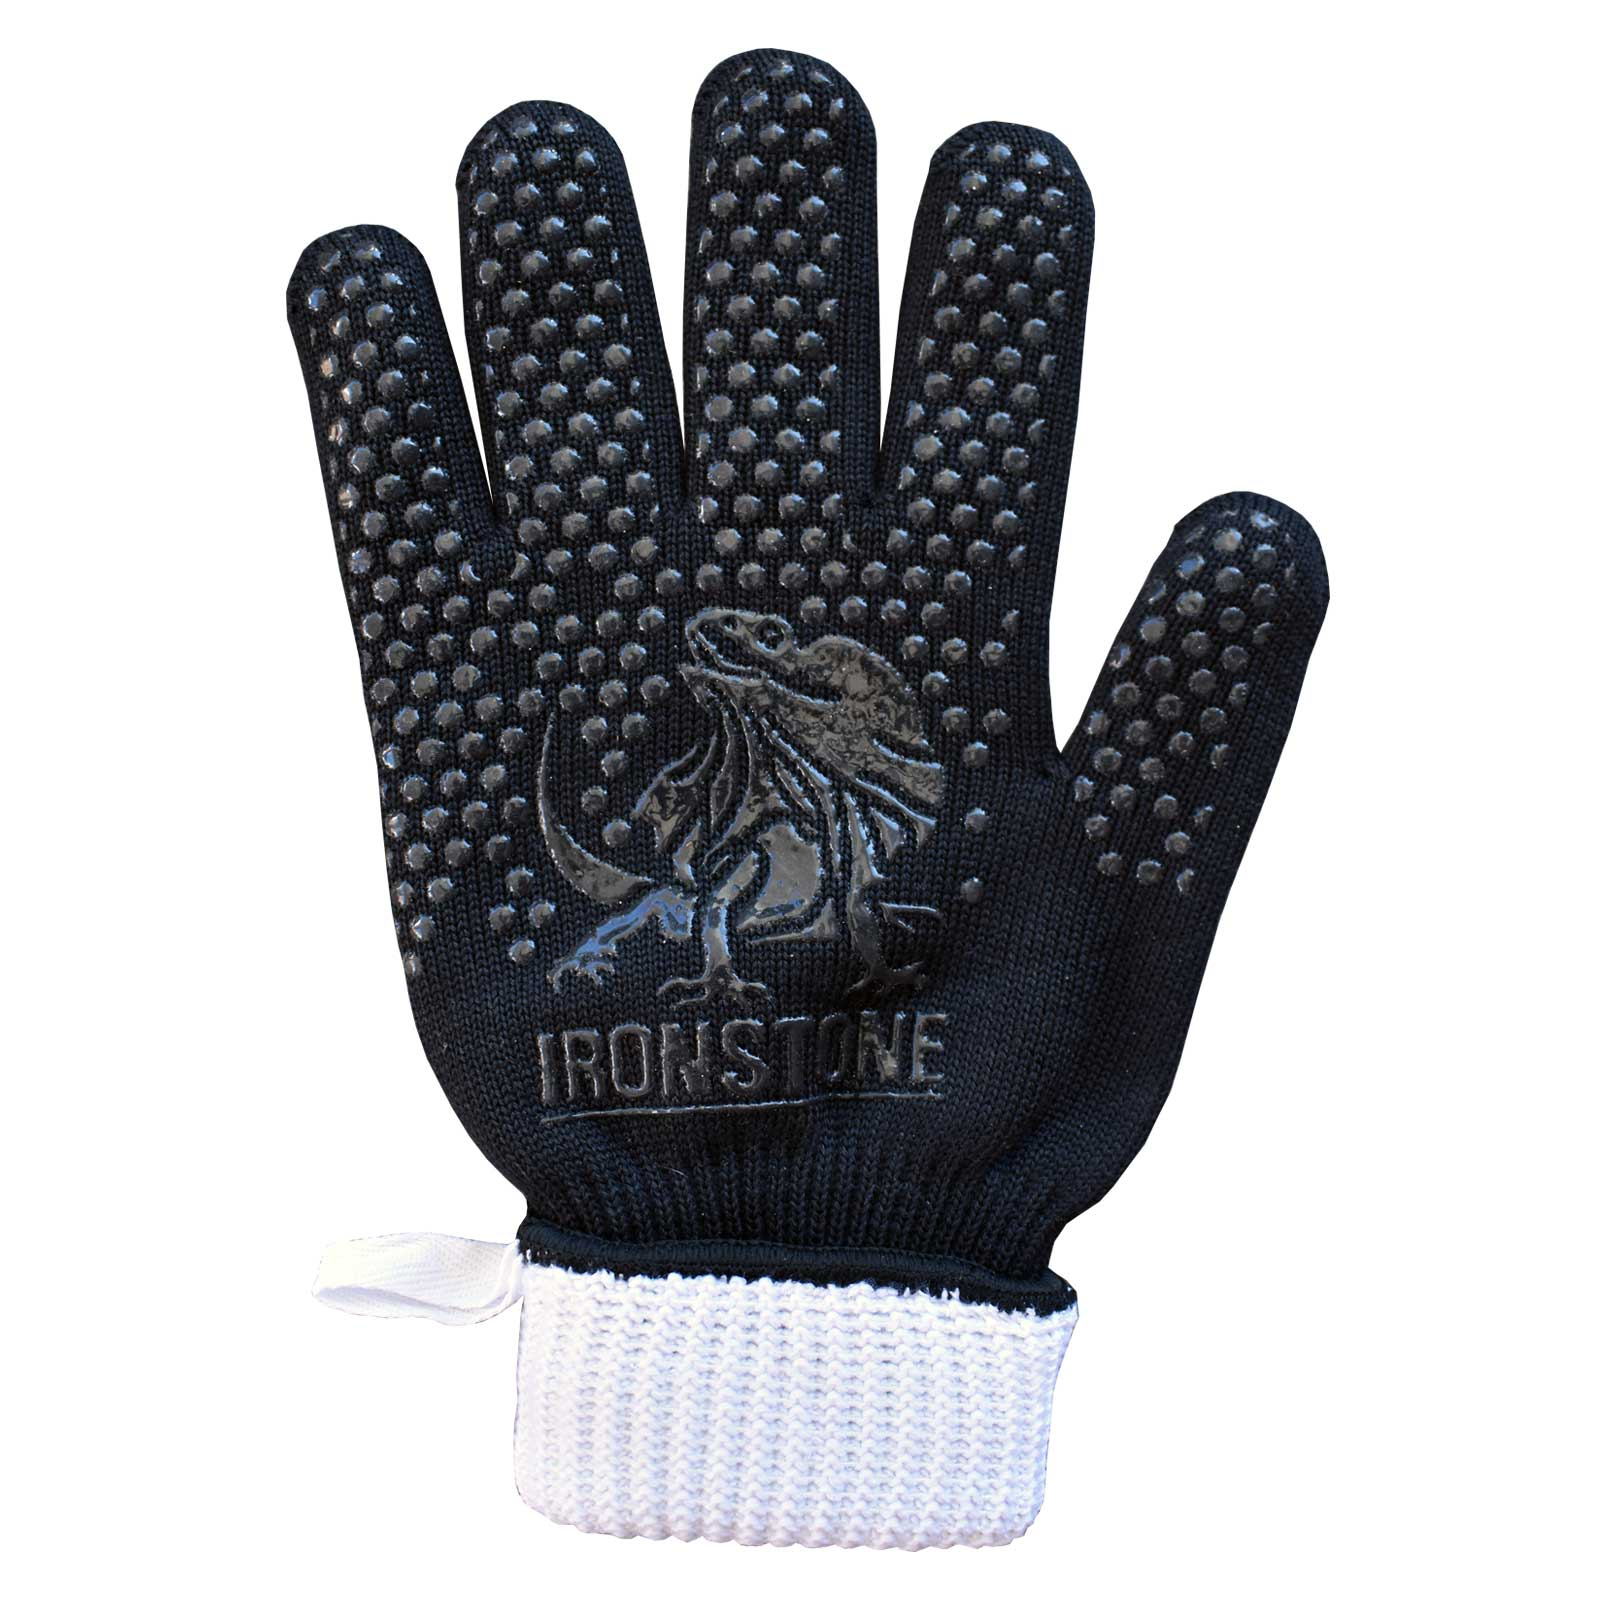 Ironstone-gloves-black7